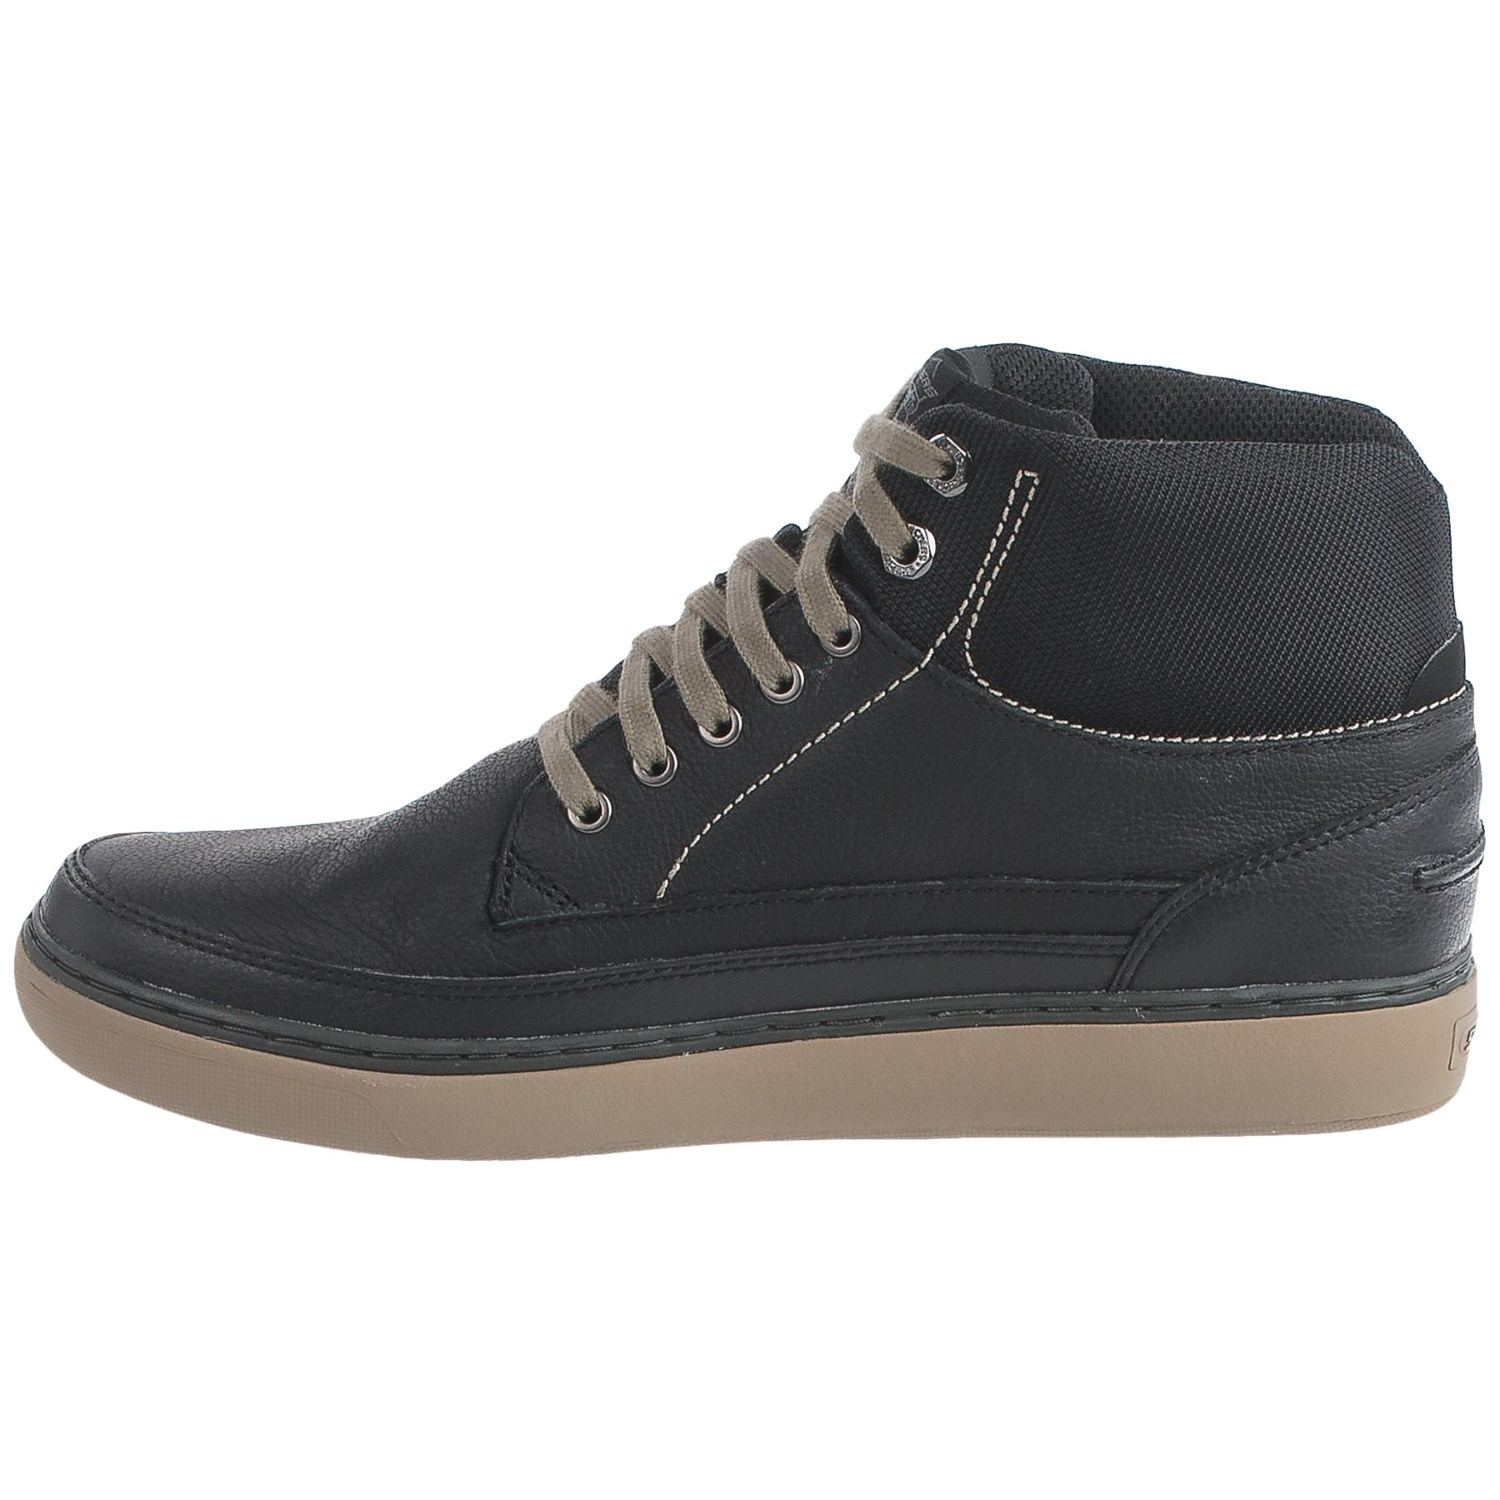 New Men's Size 45/ Camper Runner Black Leather Sneakers Boots K Camper Runner Black Sneakers Men K Retail $ Runner men's sneaker boots offer a relaxed look with soft leather and a sporty silhouette in a reimagined style taken from our archives.